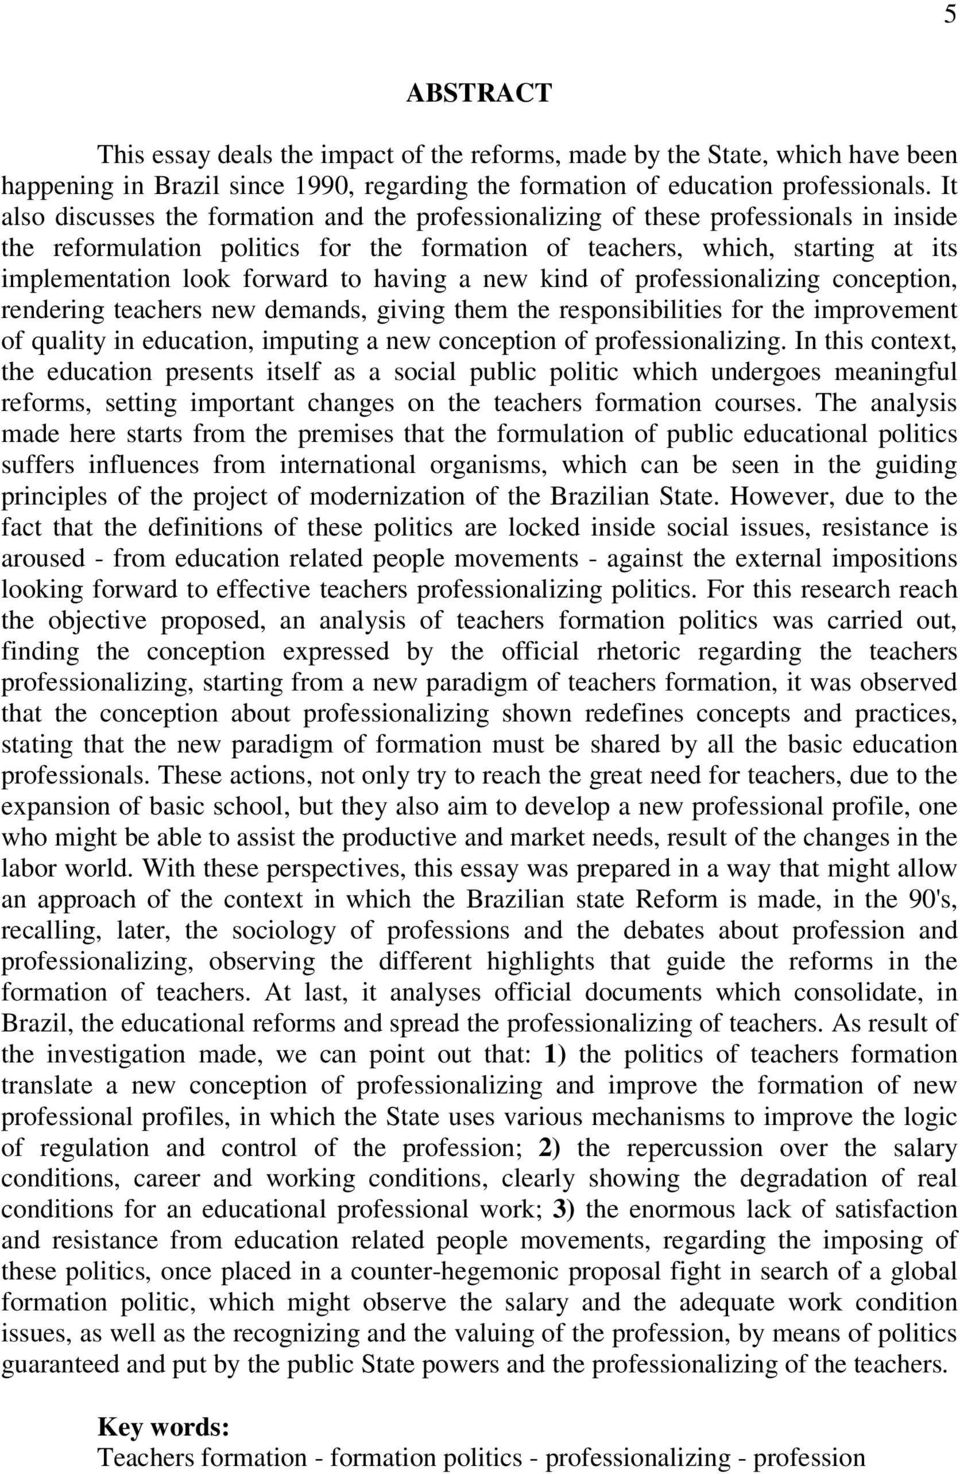 to having a new kind of professionalizing conception, rendering teachers new demands, giving them the responsibilities for the improvement of quality in education, imputing a new conception of